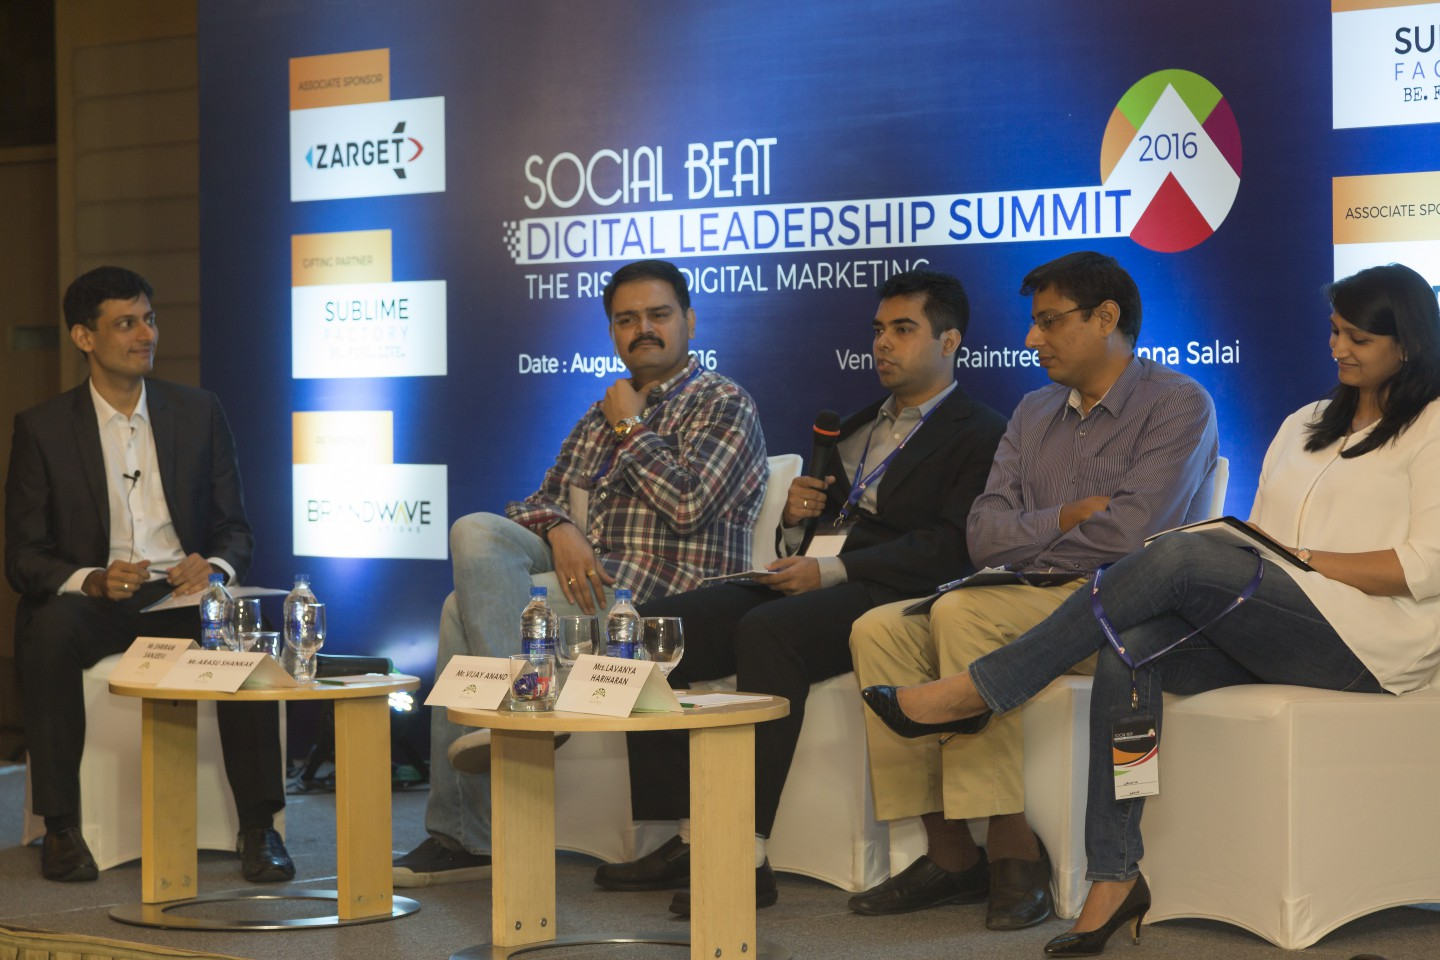 Return-Investment-Panel-Social-Beat-Digital-Leadership-Summit-2016-Chennai